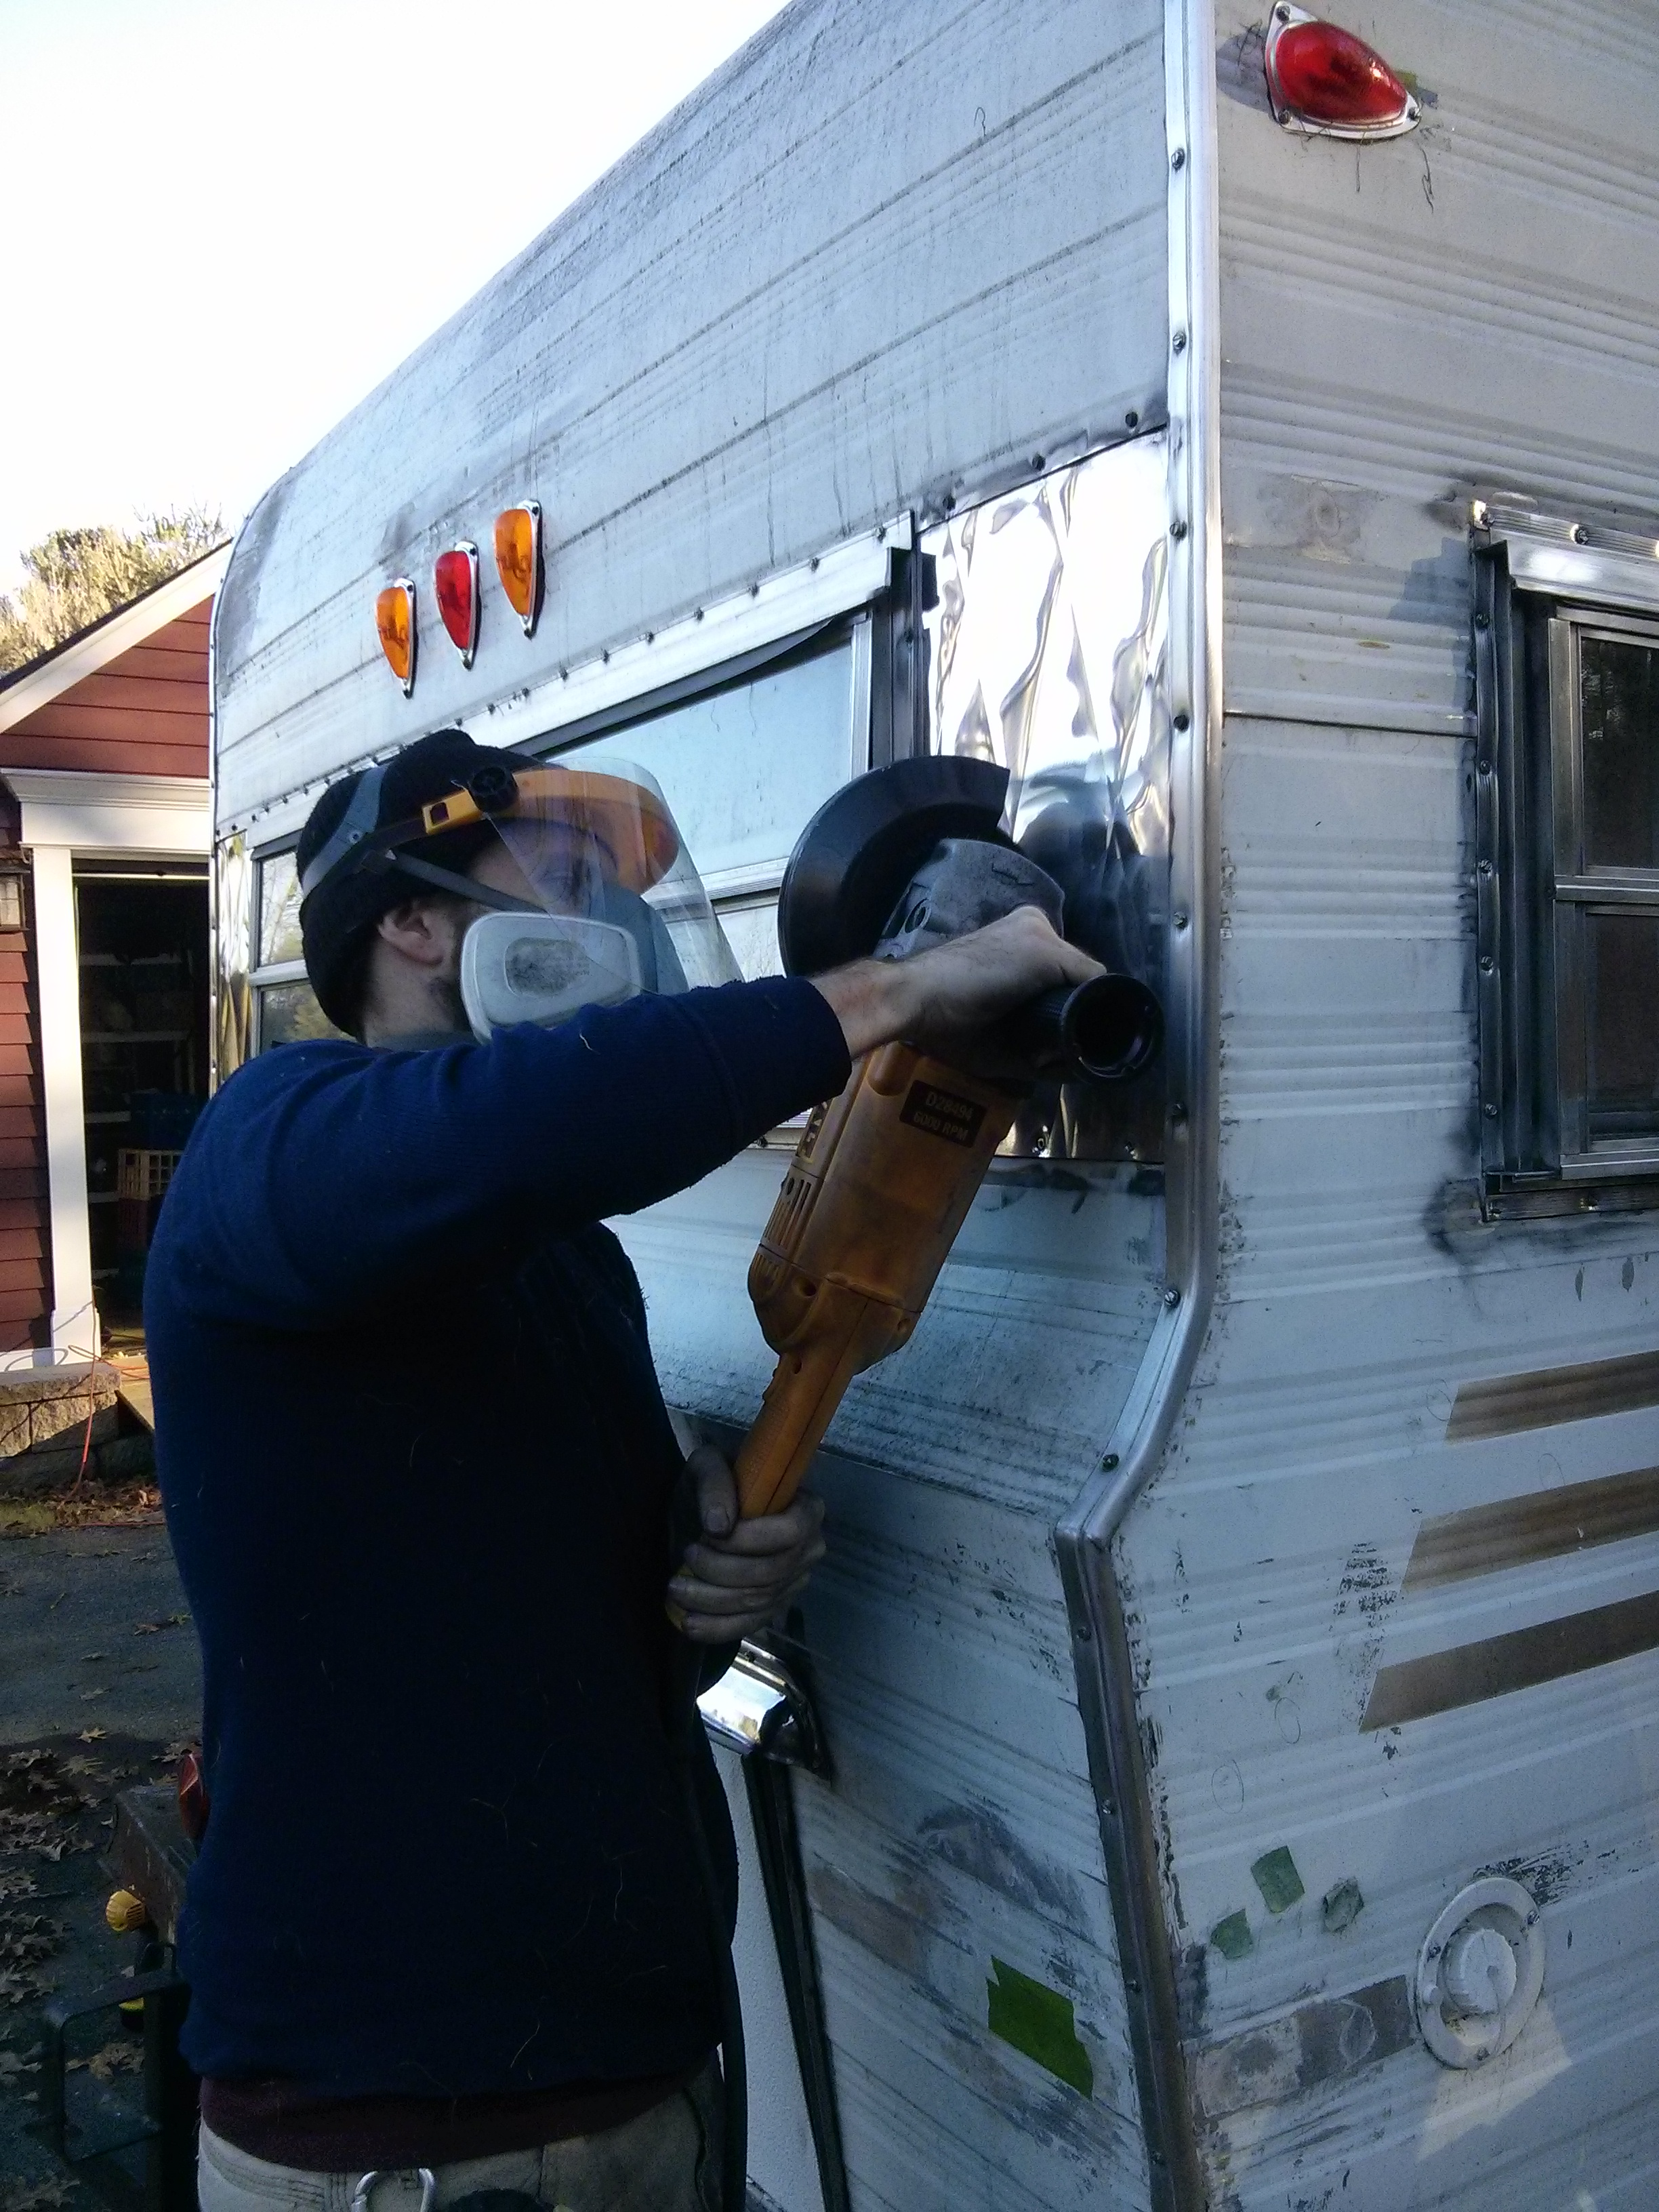 Dewalt Large Angle Grinder to polish the tarnished aluminum on the COMET back up to it's original mirror finish. Awesome!